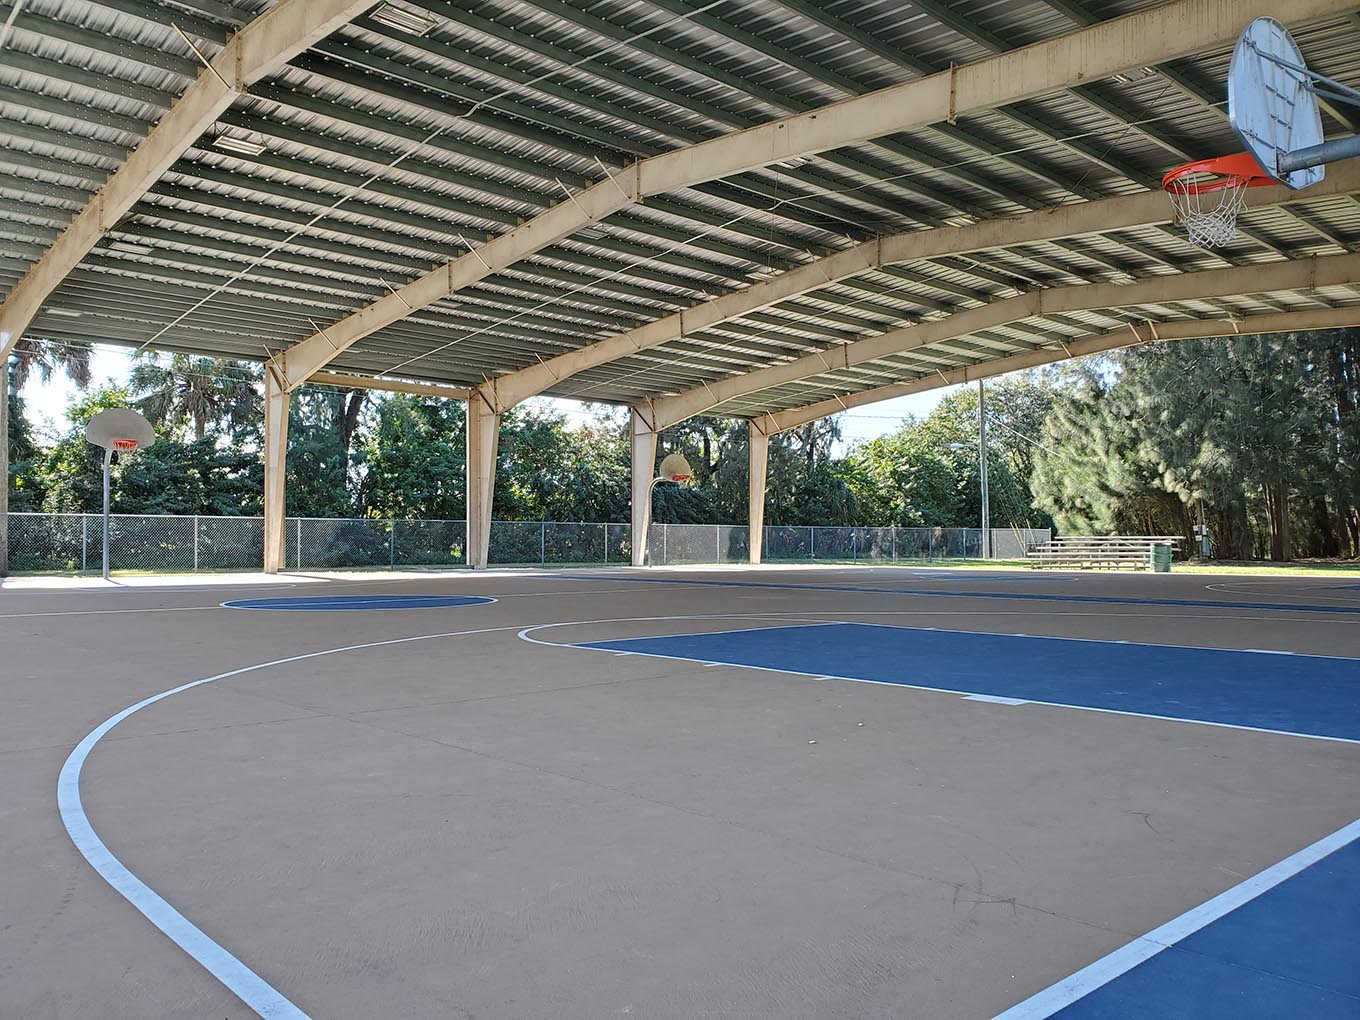 Covered basketball courts at Rusking Rec Center